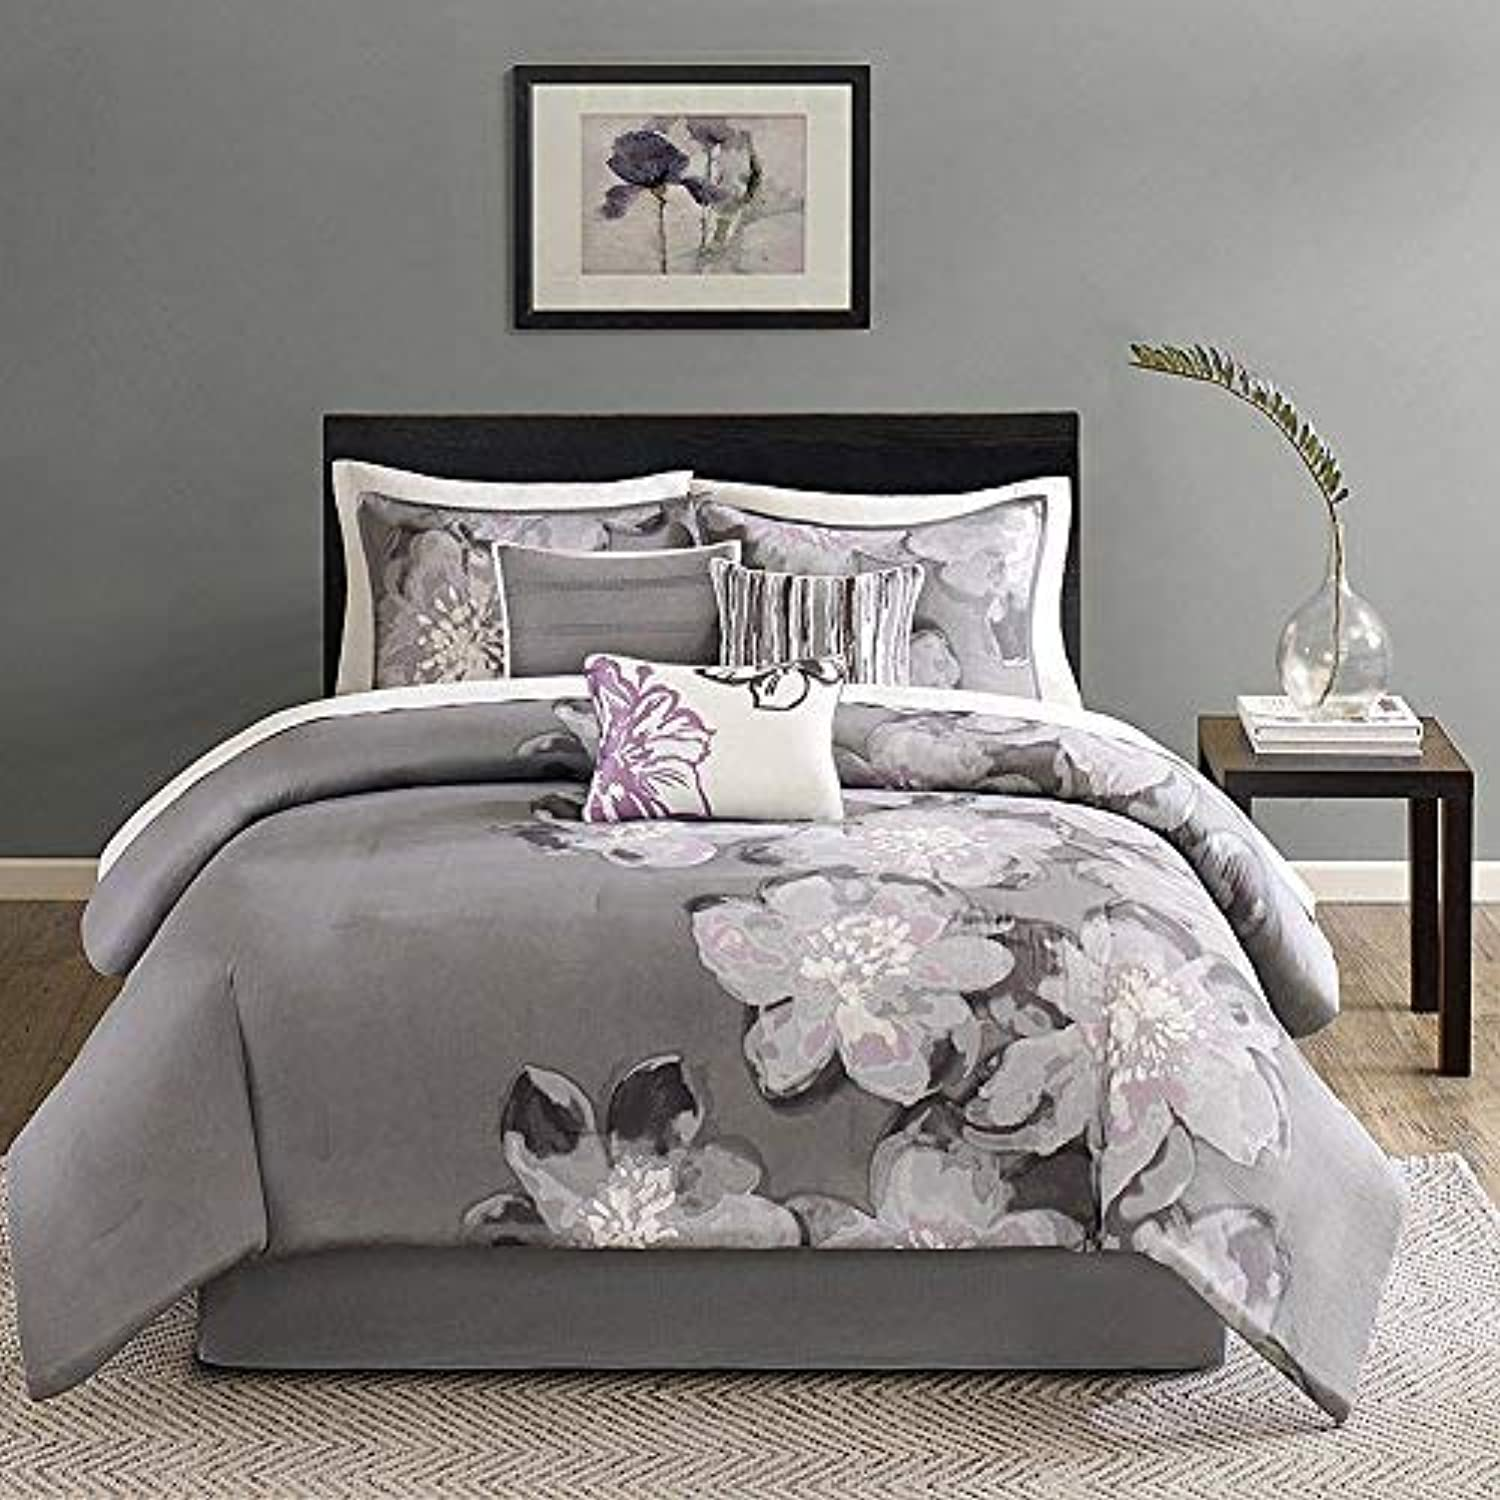 Madison Park Serena Cal King Size Bed Comforter Set Bed in A Bag - Grey, Floral – 7 Pieces Bedding Sets – Sateen Cotton Bedroom Comforters